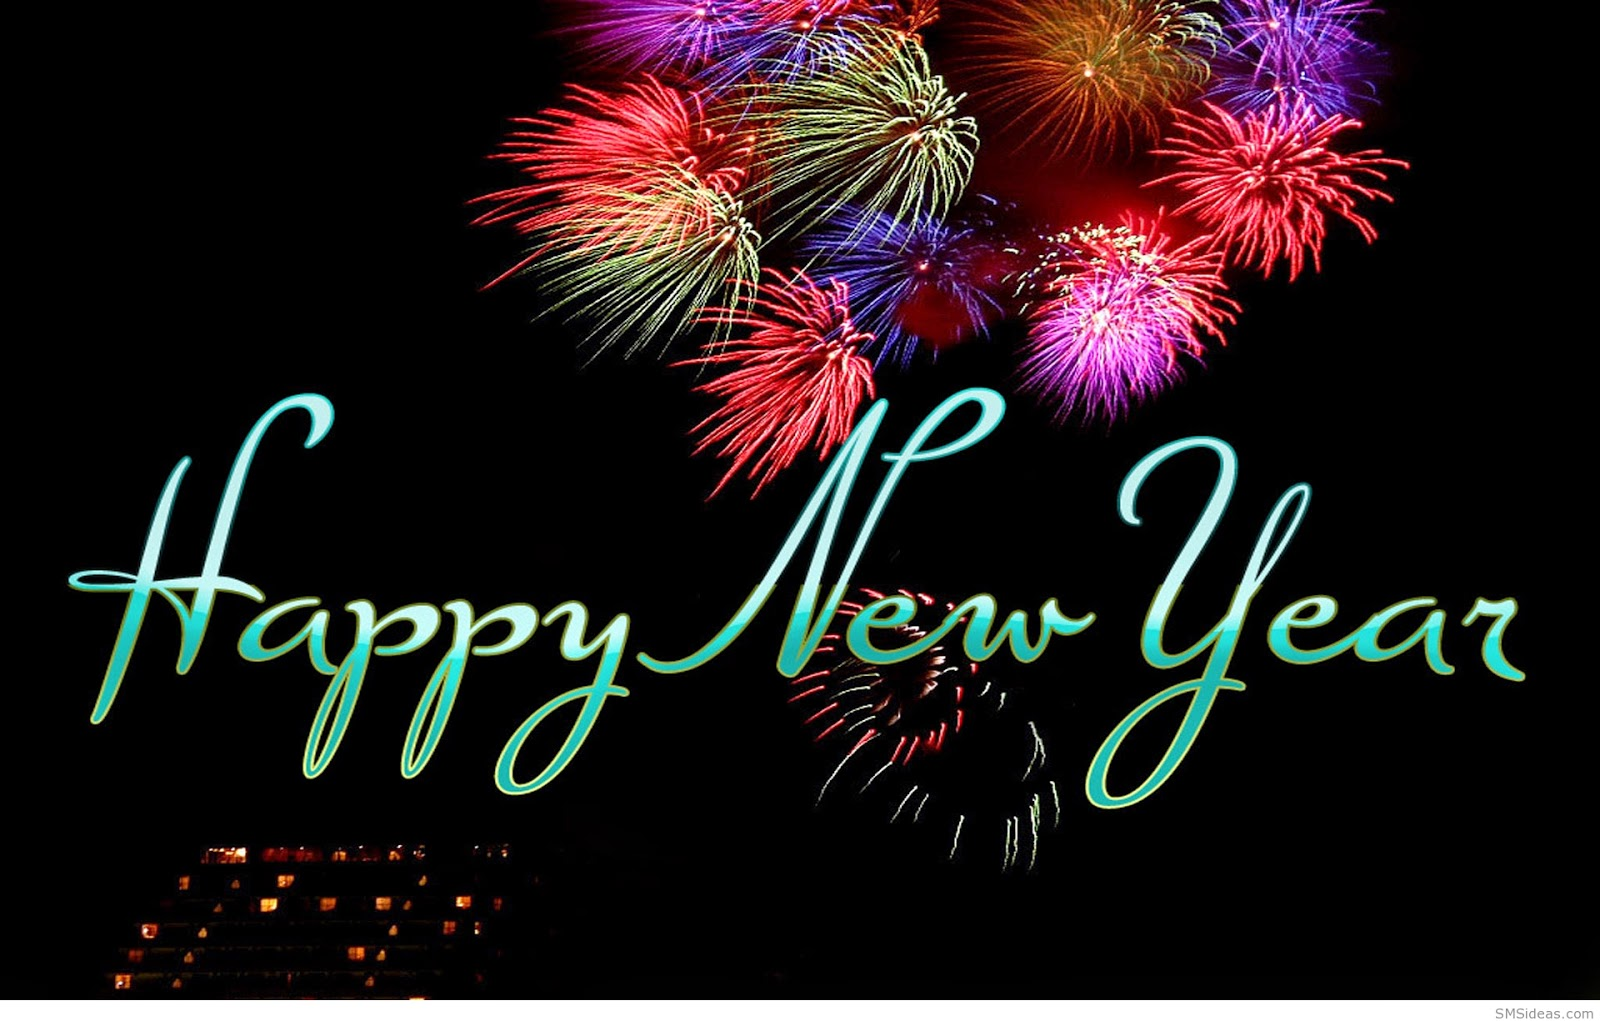 Happy New Year 2017 hd Images, Wallpapers - Free Download